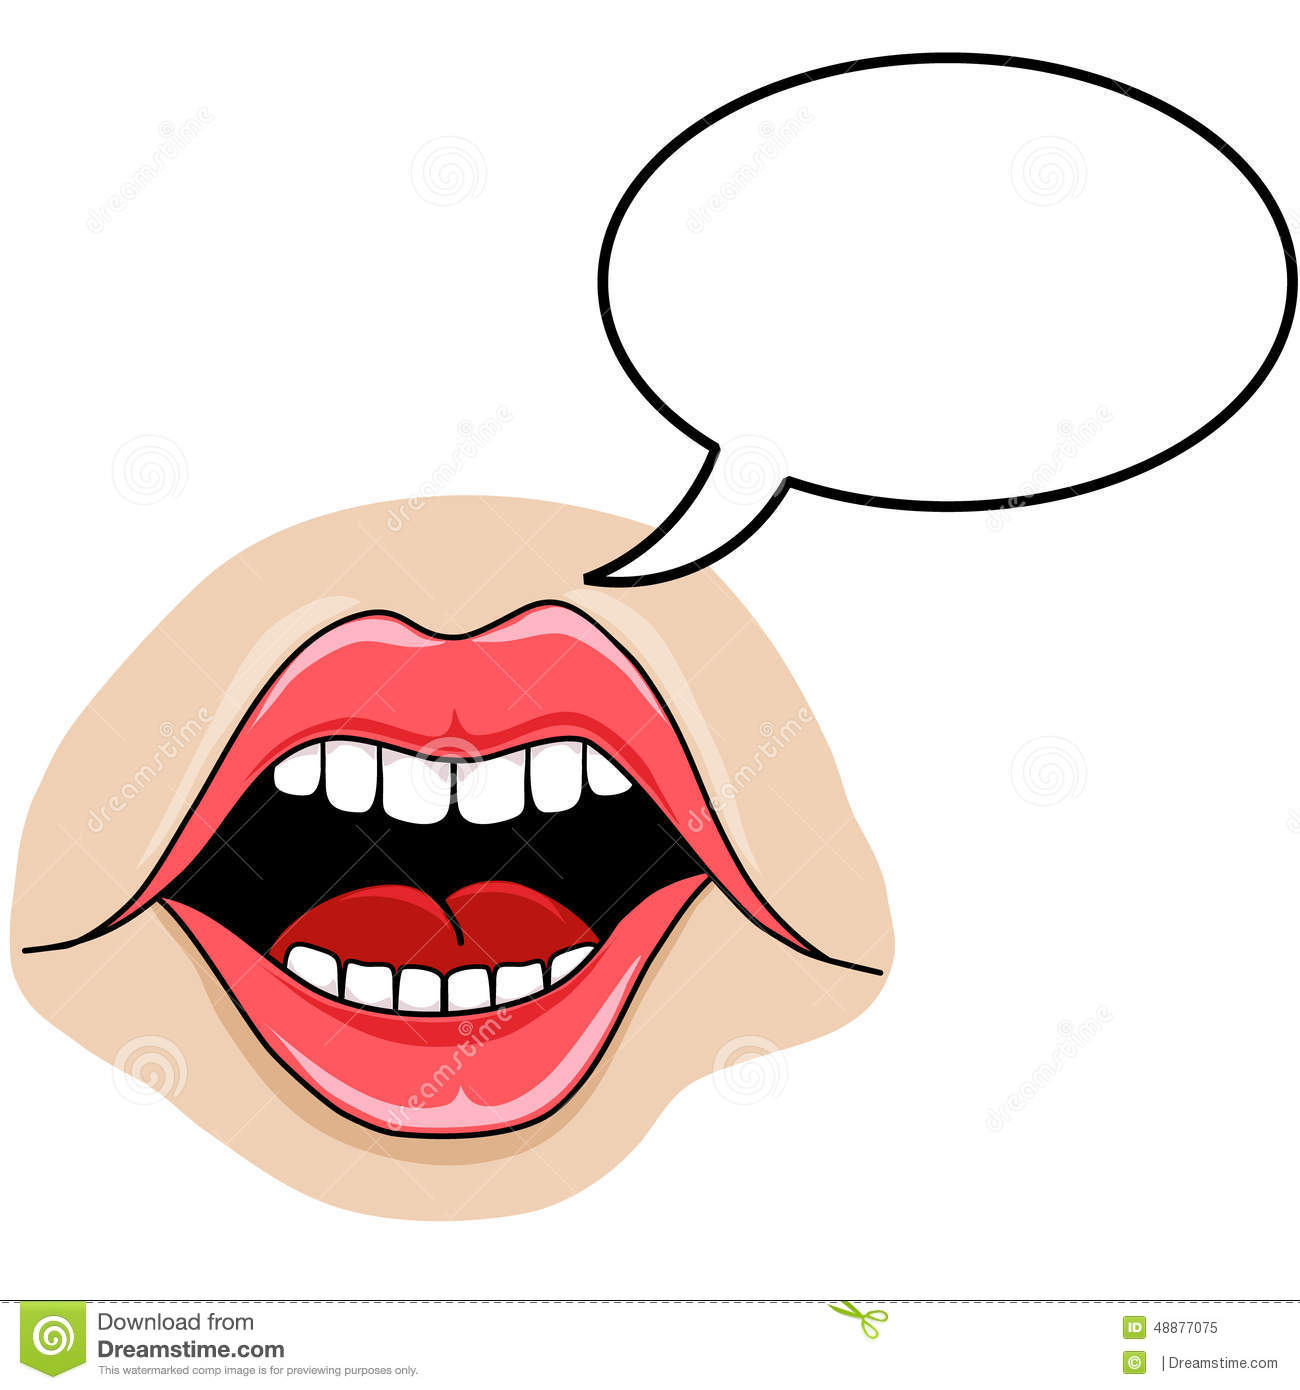 mouth speaking clipart - Clipground